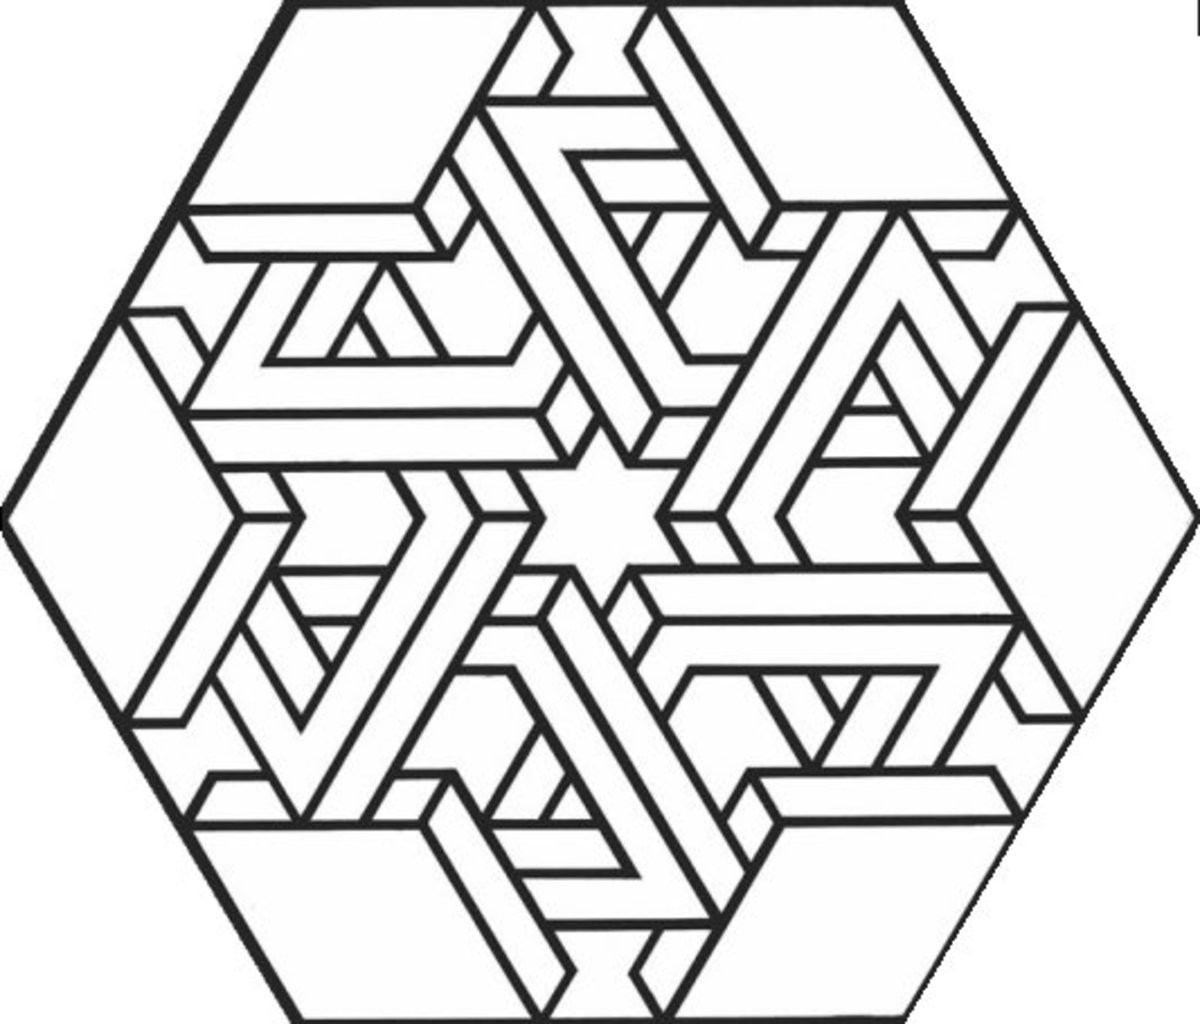 Geometric Design Coloring Pages and Stained Glass Colouring Pictures to Print - infinity blocked